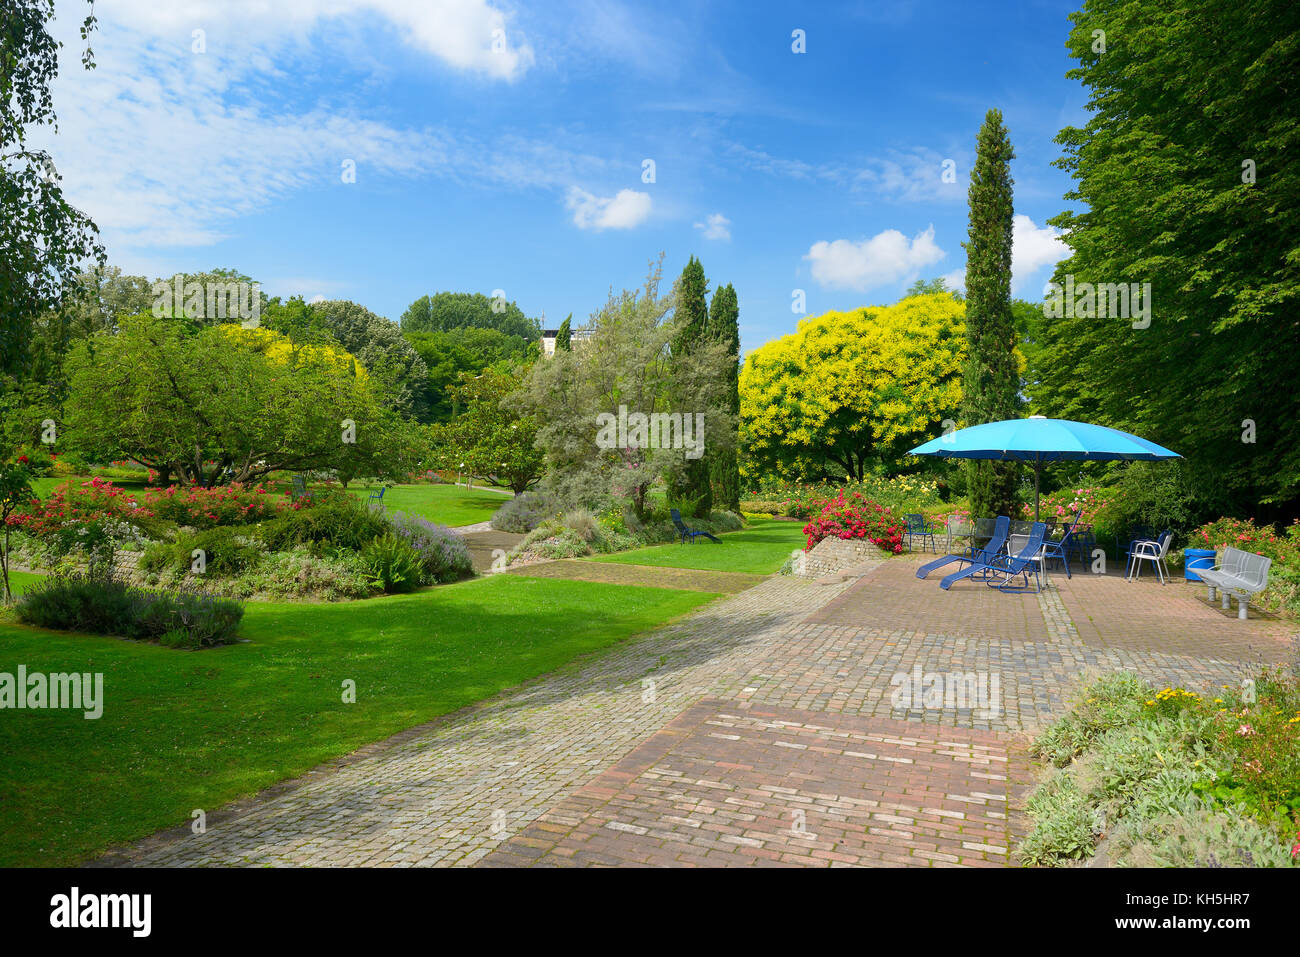 City Park in Mannheim, Germany. Resting place. Many flowers and trees. - Stock Image